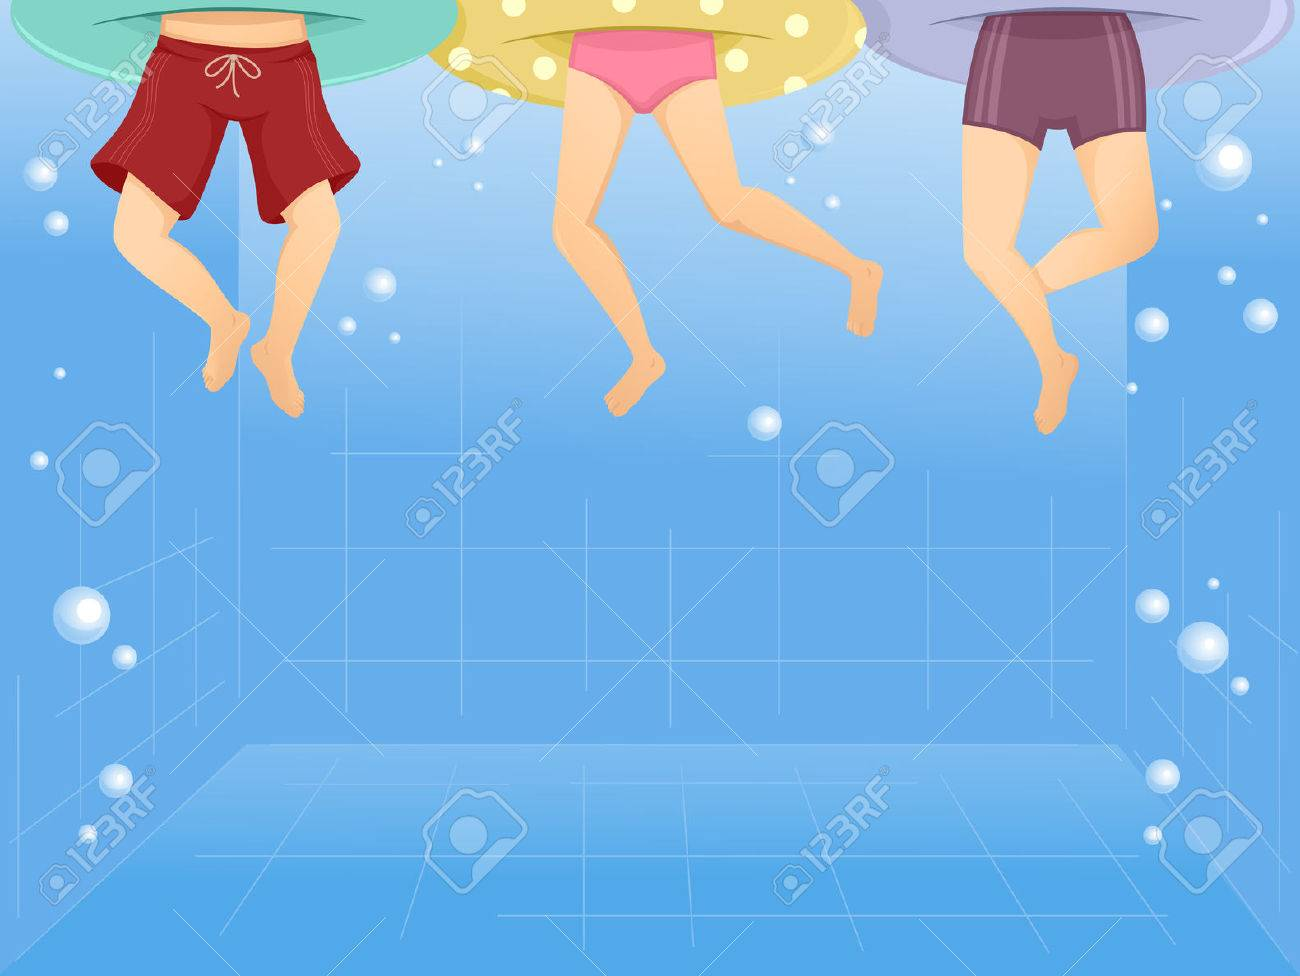 Illustration Of Kids Wearing Floaters Swimming In A Pool Stock Illustration    48026273